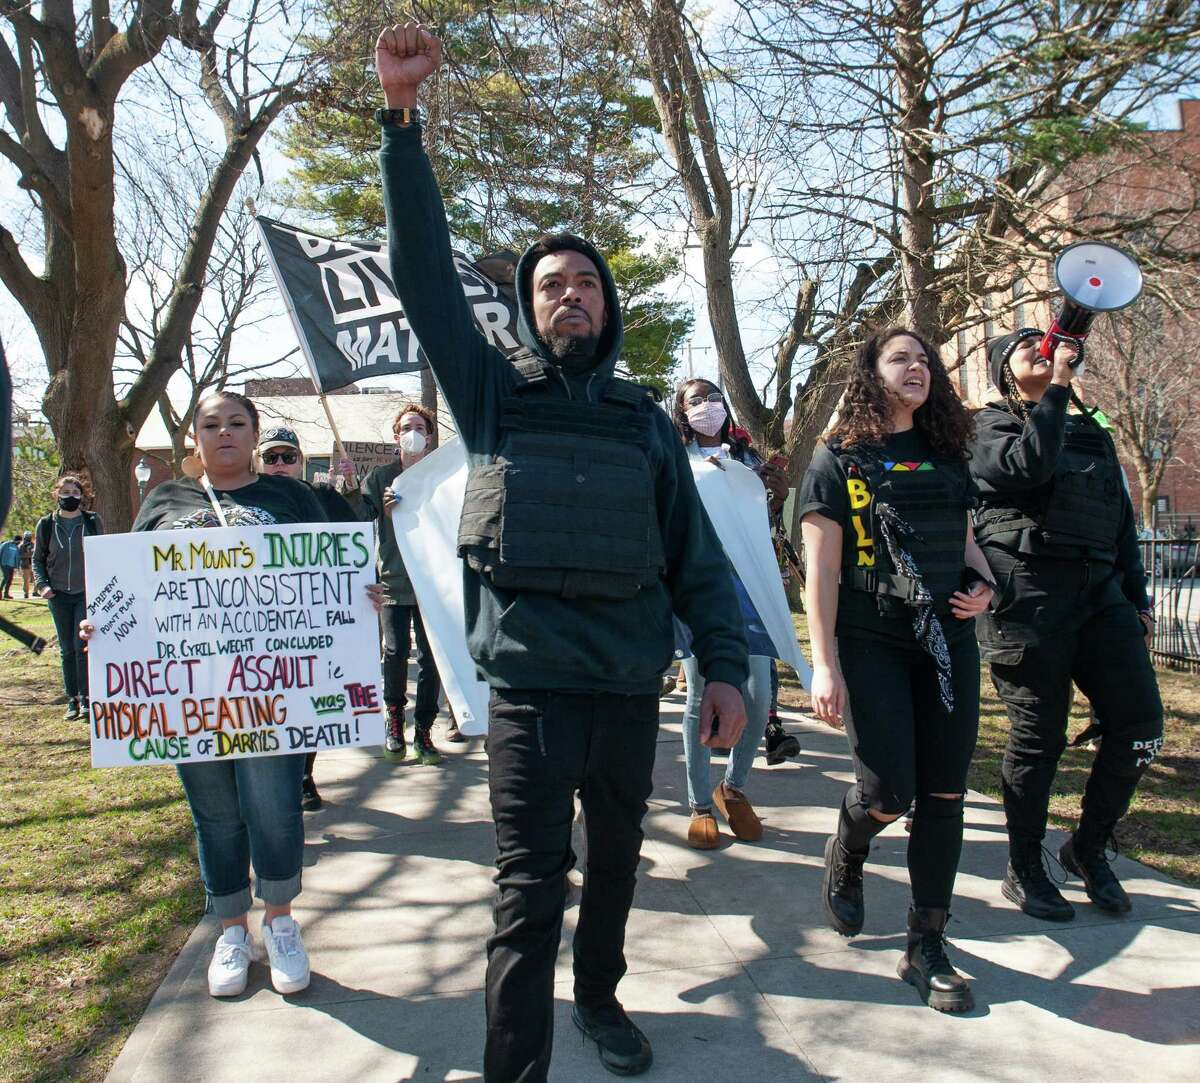 Saratoga Black Lives Matter leader Lexis Figuereo, center, leads a march from Congress Park on Saturday, March 27, 2021. He was among the activists arrested this month. (Jenn March, Special to the Times Union )